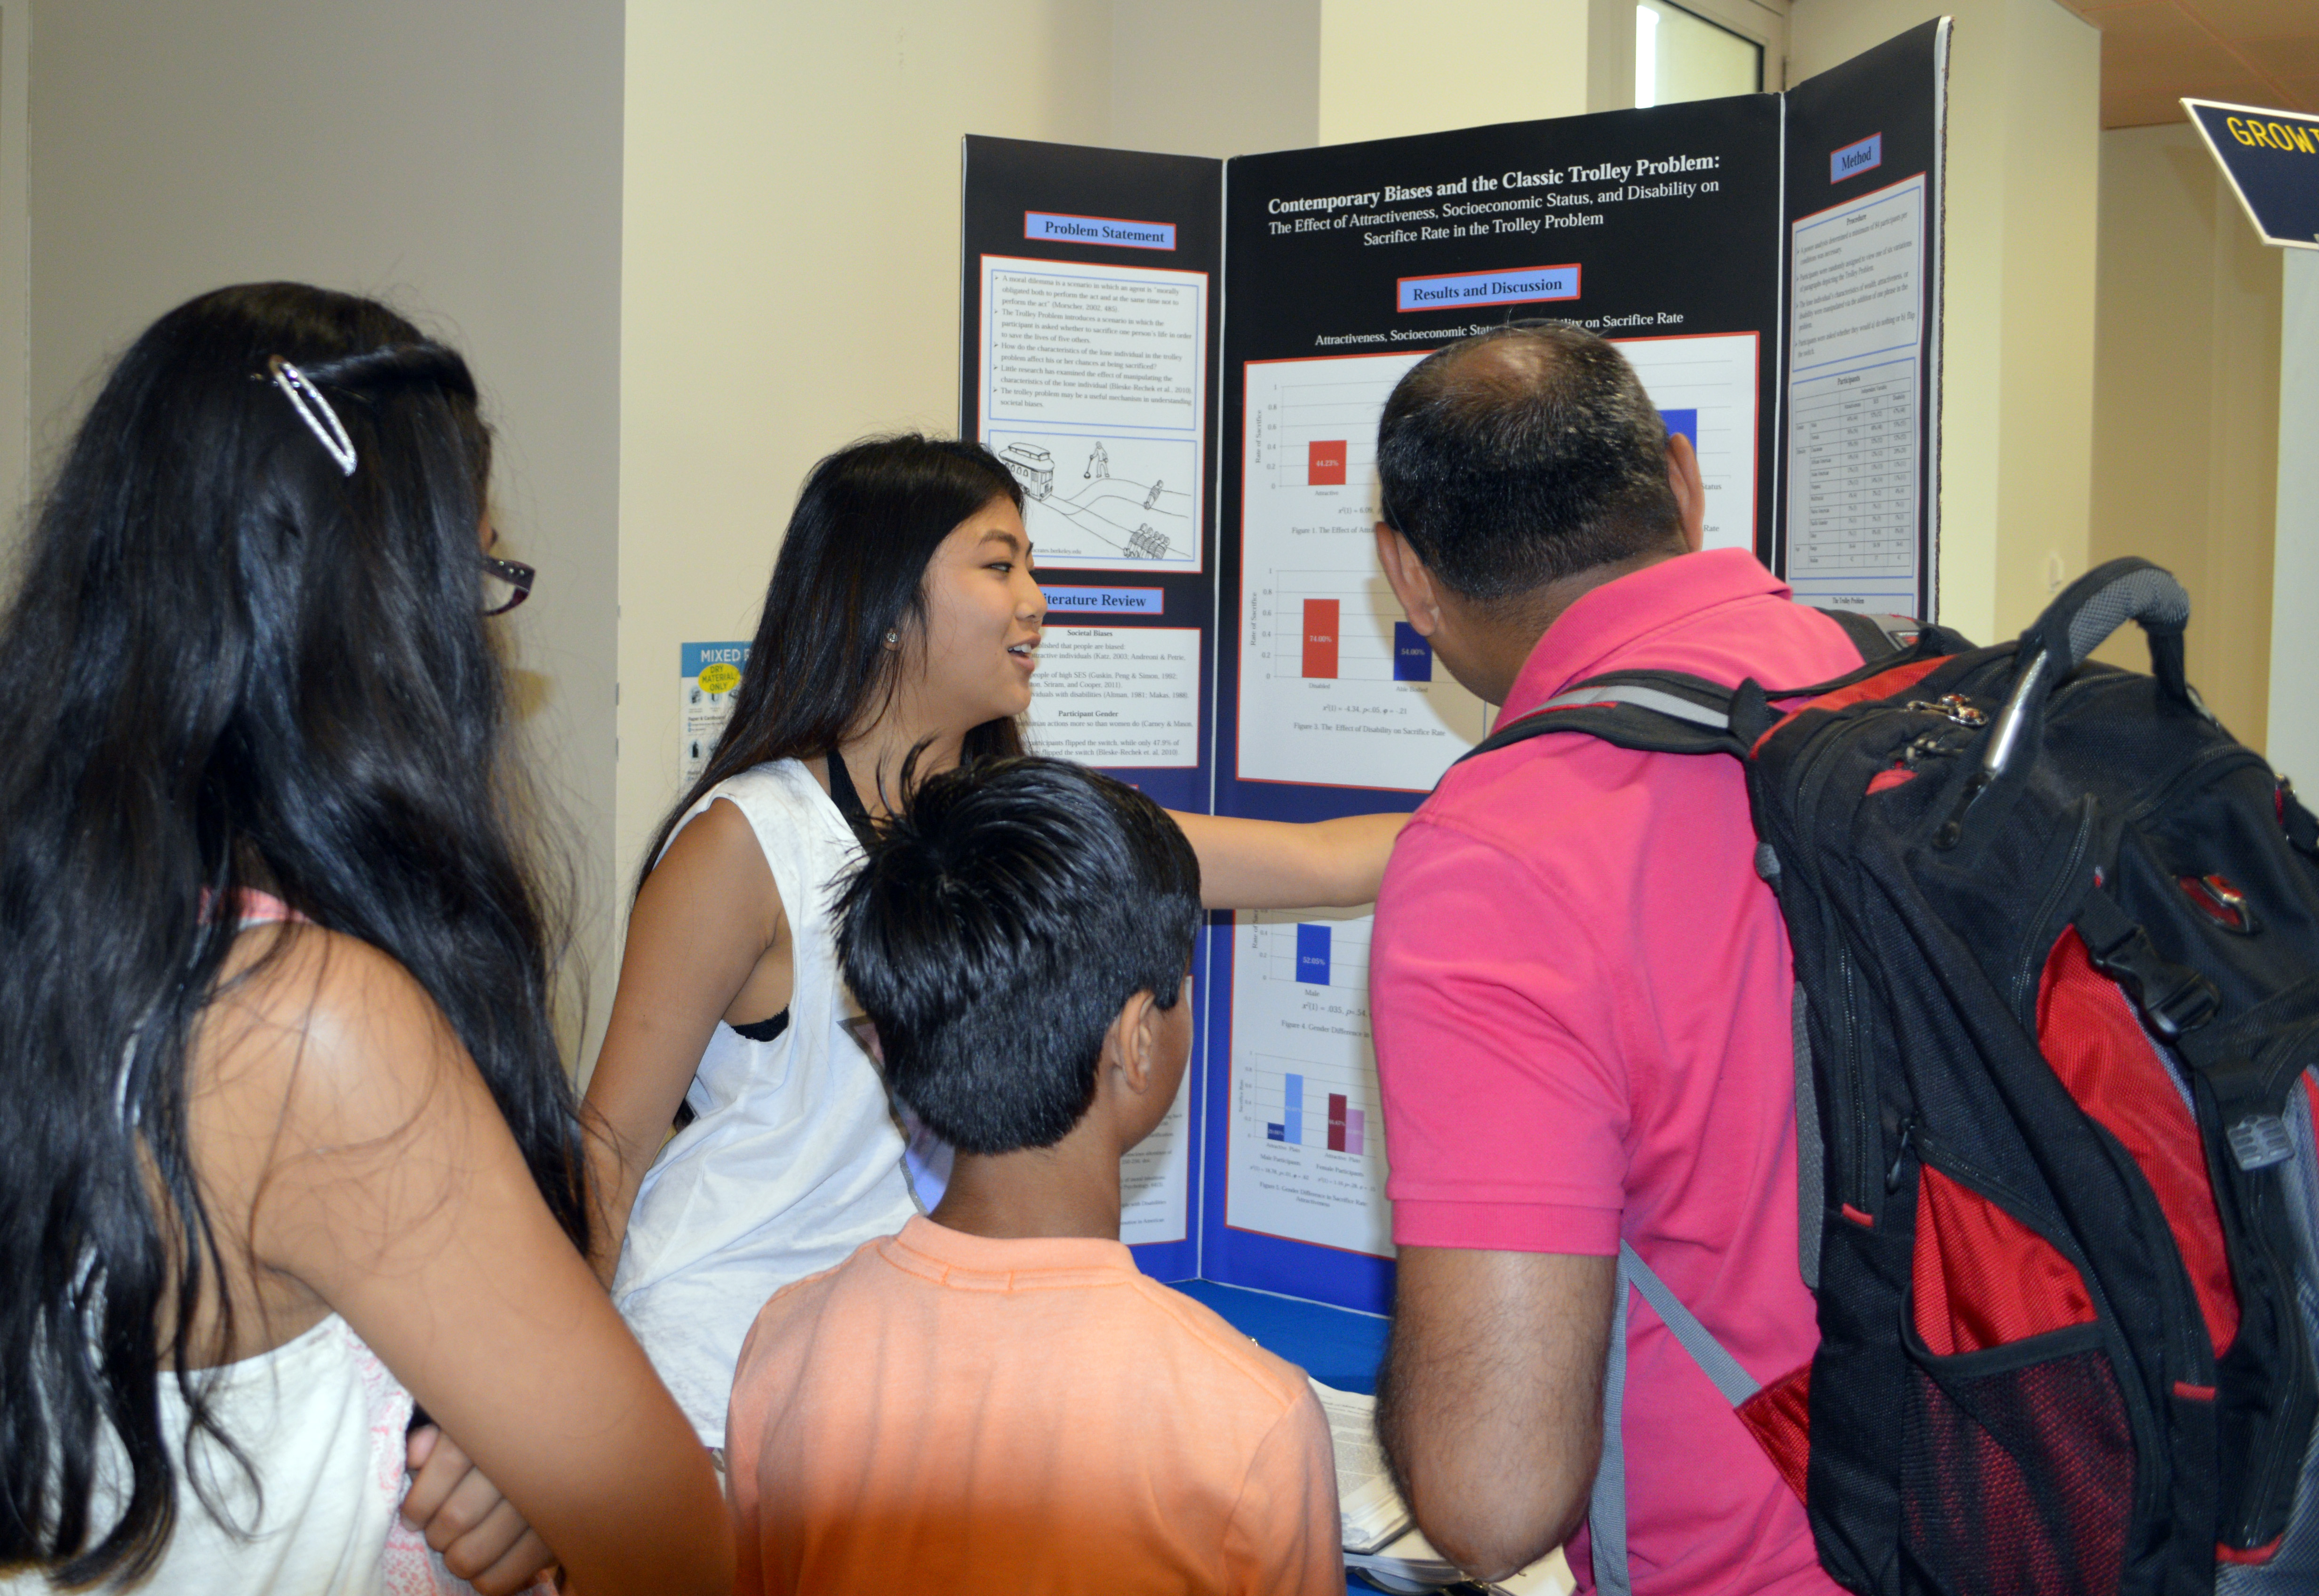 Tiffany Sun shares her behavioral science research with passersby.